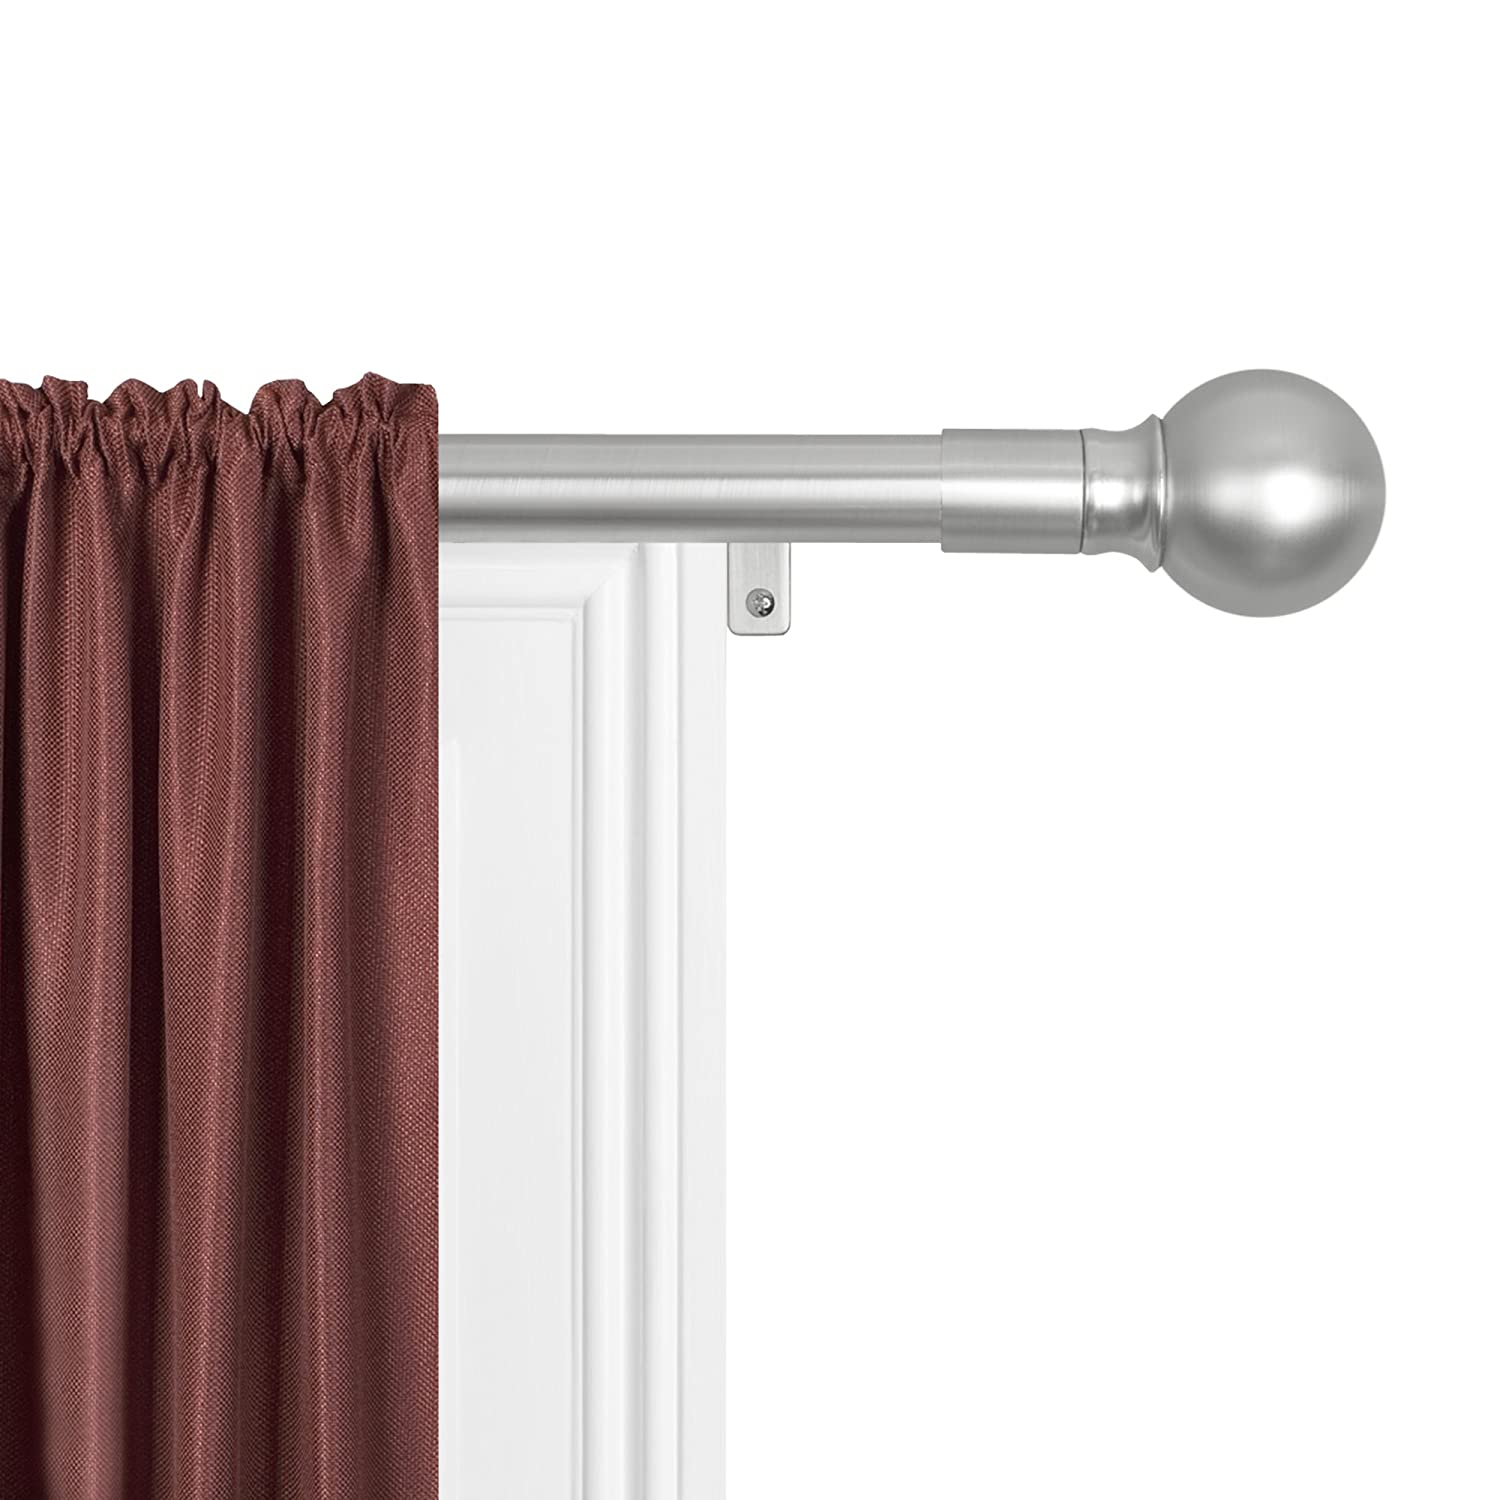 MAYTEX Smart Rods No Measuring Easy Install 1 Window Drapery Curtain Rod with Ball Finial, 18 inch - 48 inch, Antique Brass Maytex Mills Inc 6252